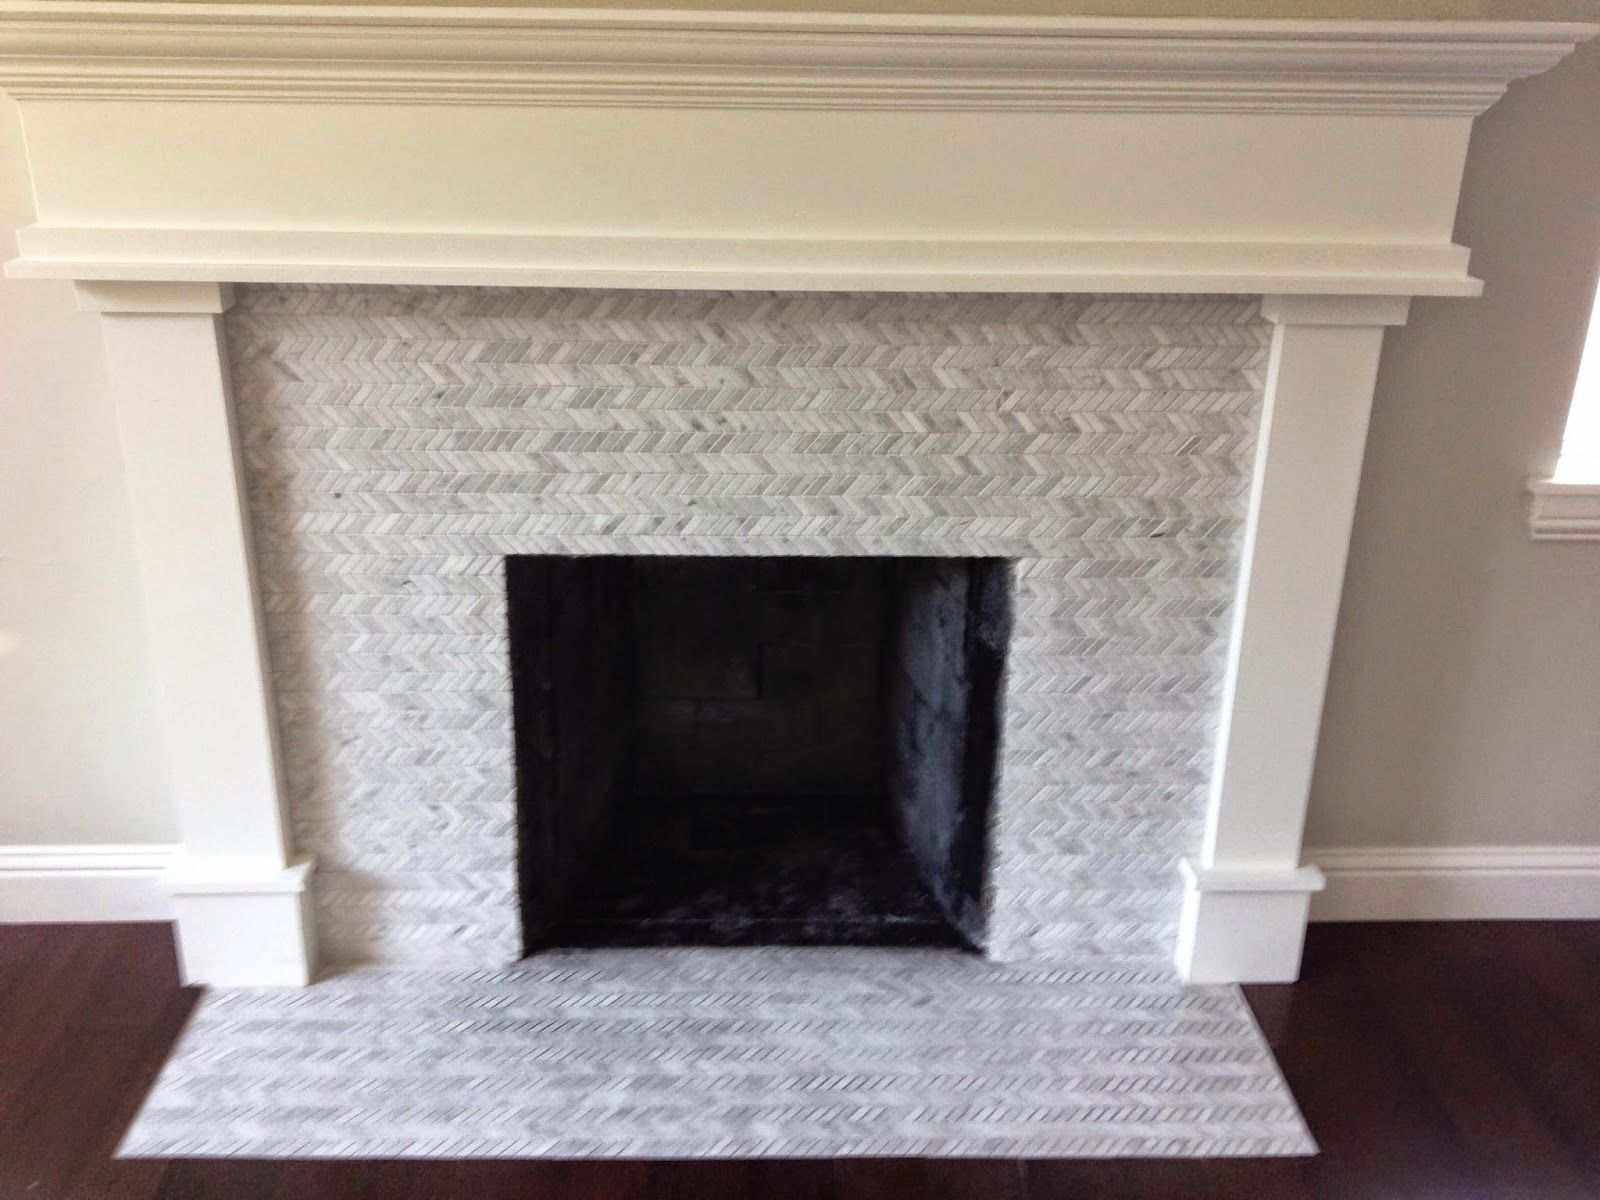 White gold remodel fireplace project tile carrara herringbone from salt lake company paint color benjamin moore moonshine for walls also pictures uk